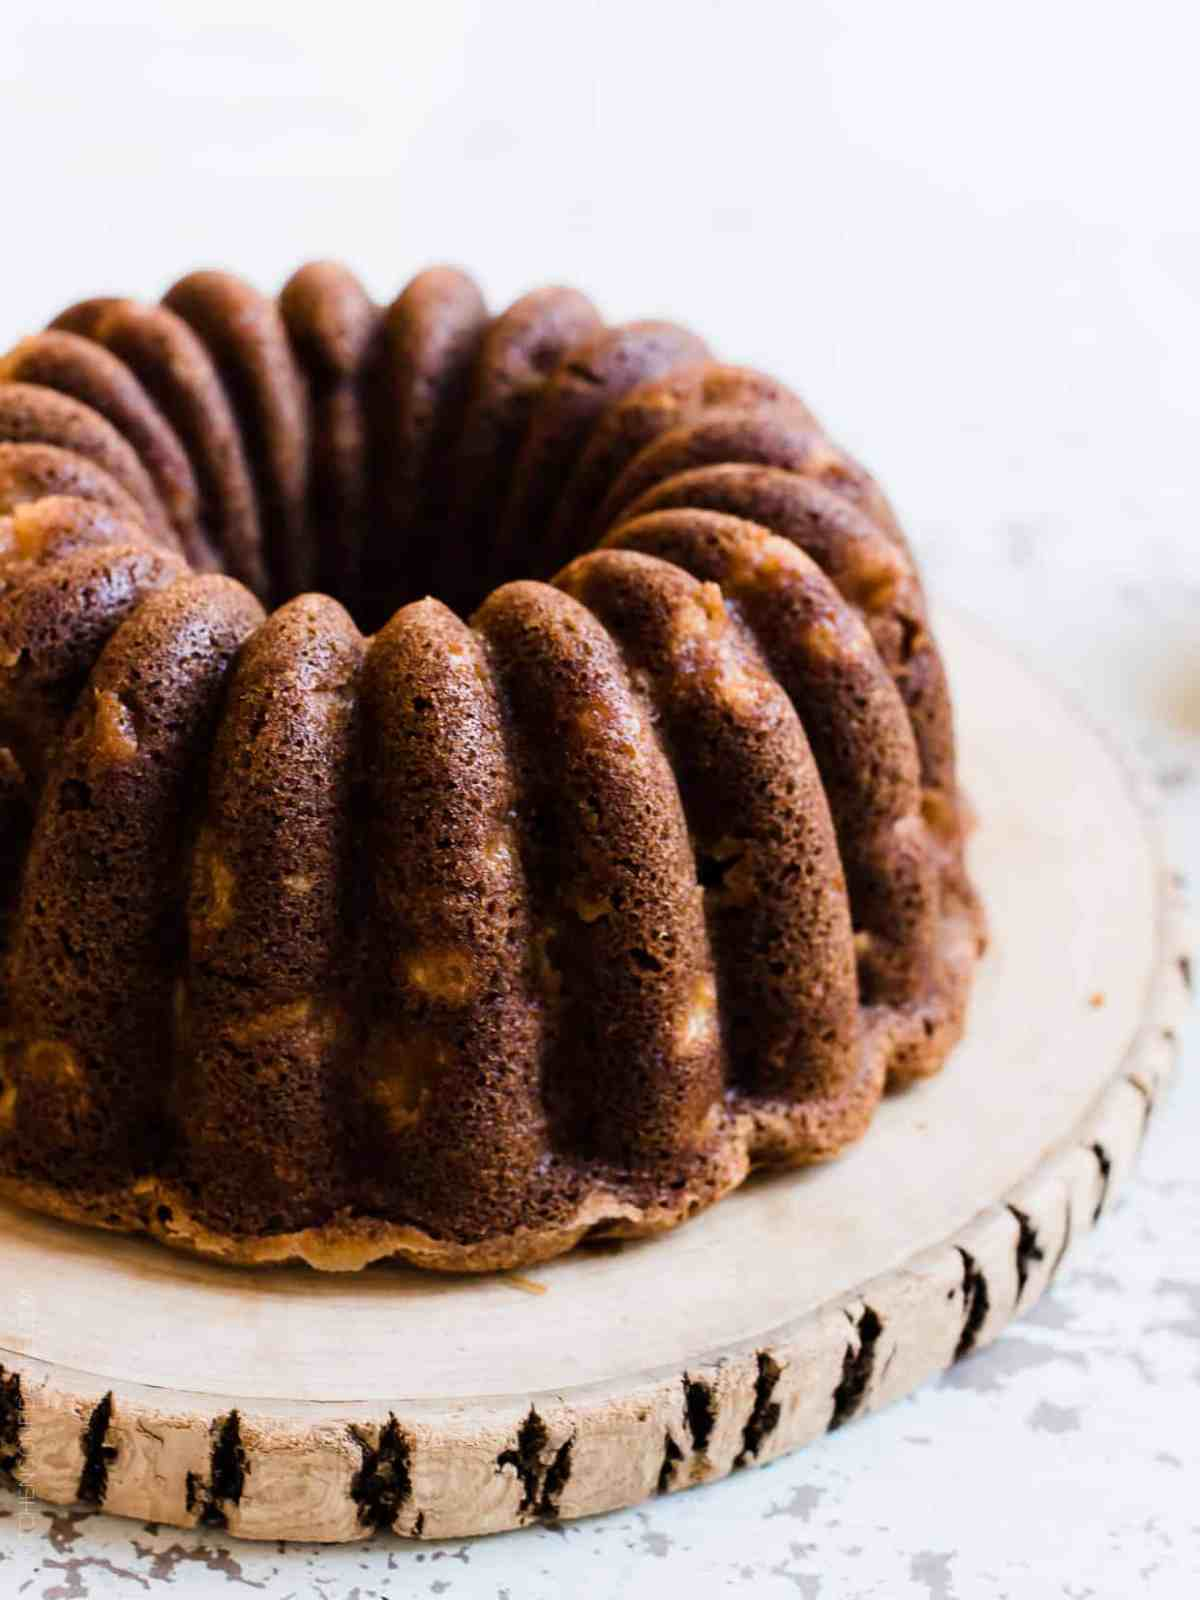 Apple Cake baked in a fluted pan and studded with walnuts.